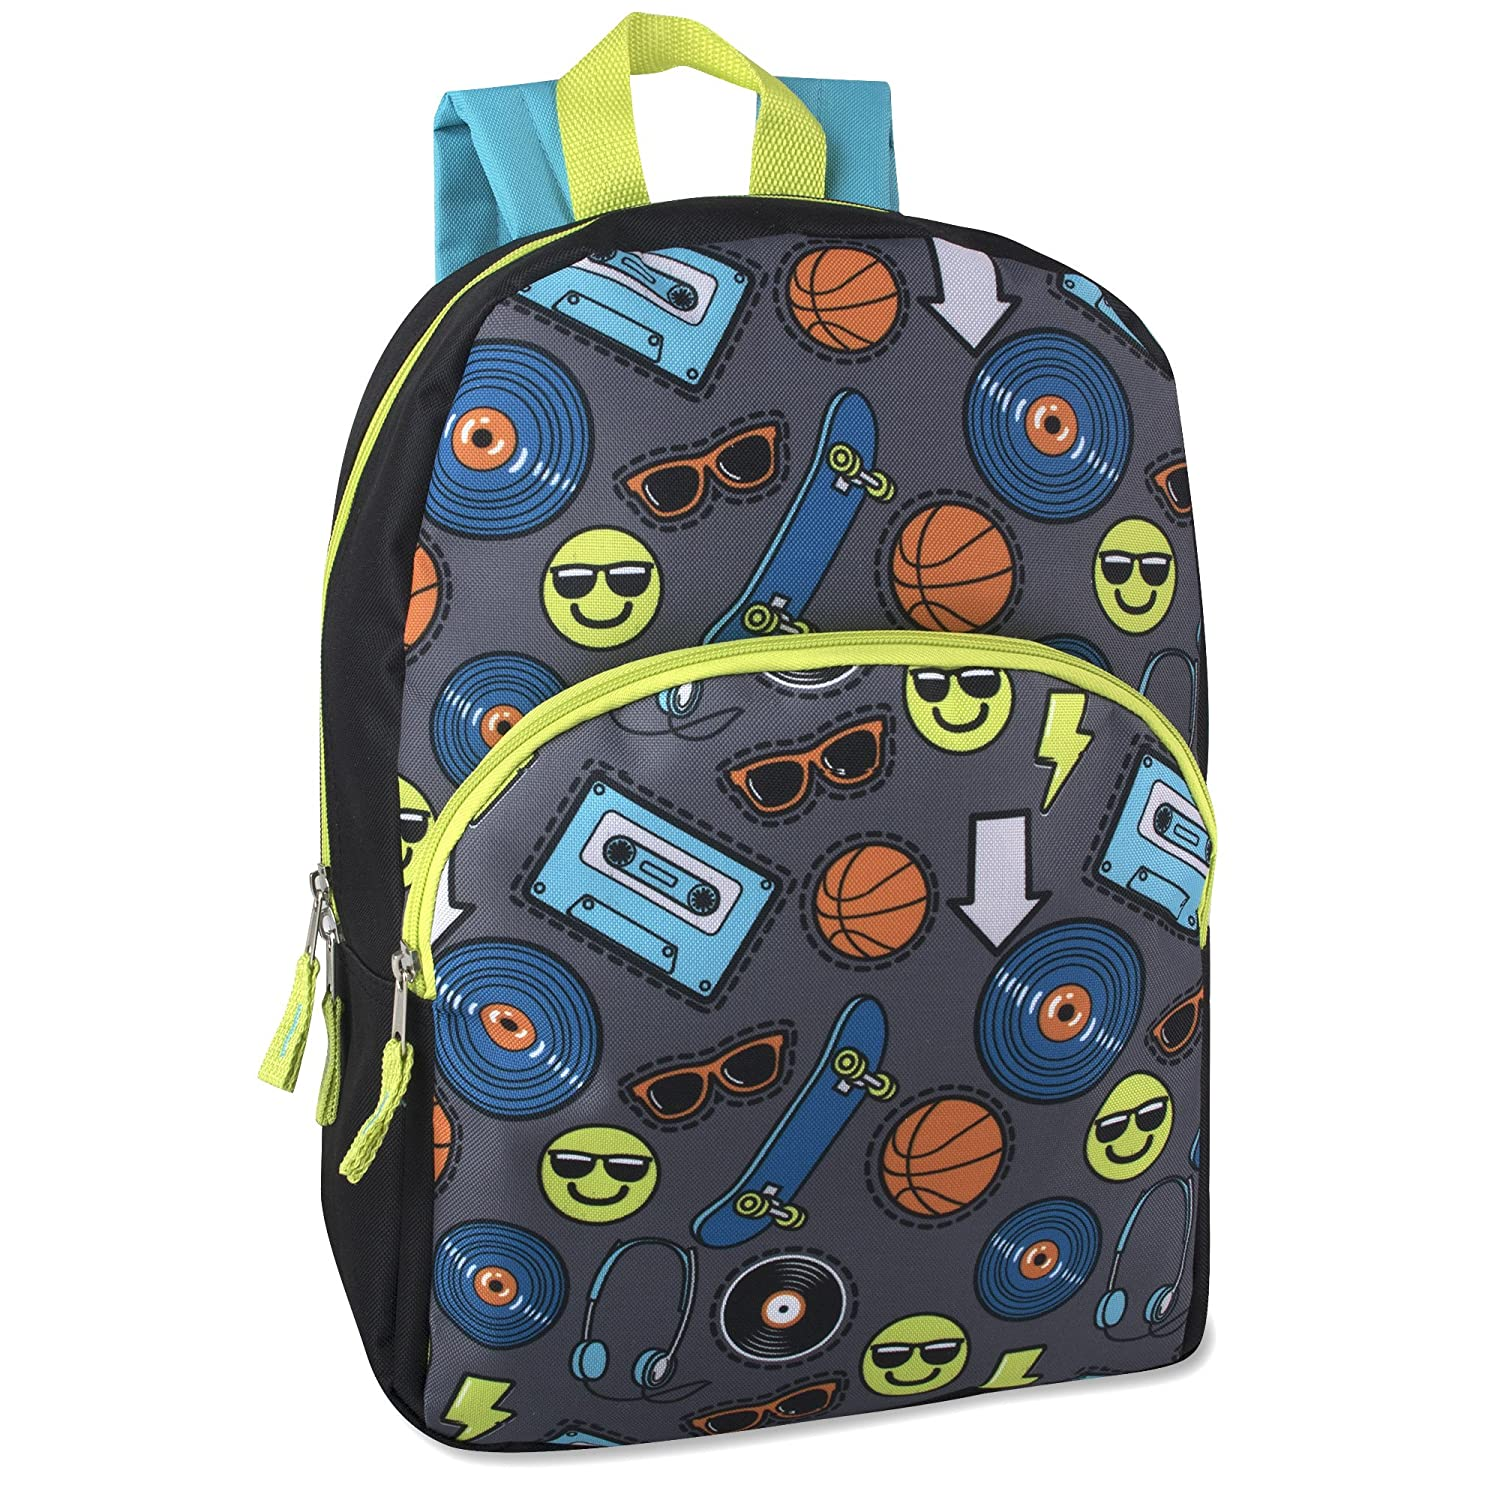 Trail maker Character Backpack (15') with Fun Fashionable Design for Boys & Girls… Trailmaker